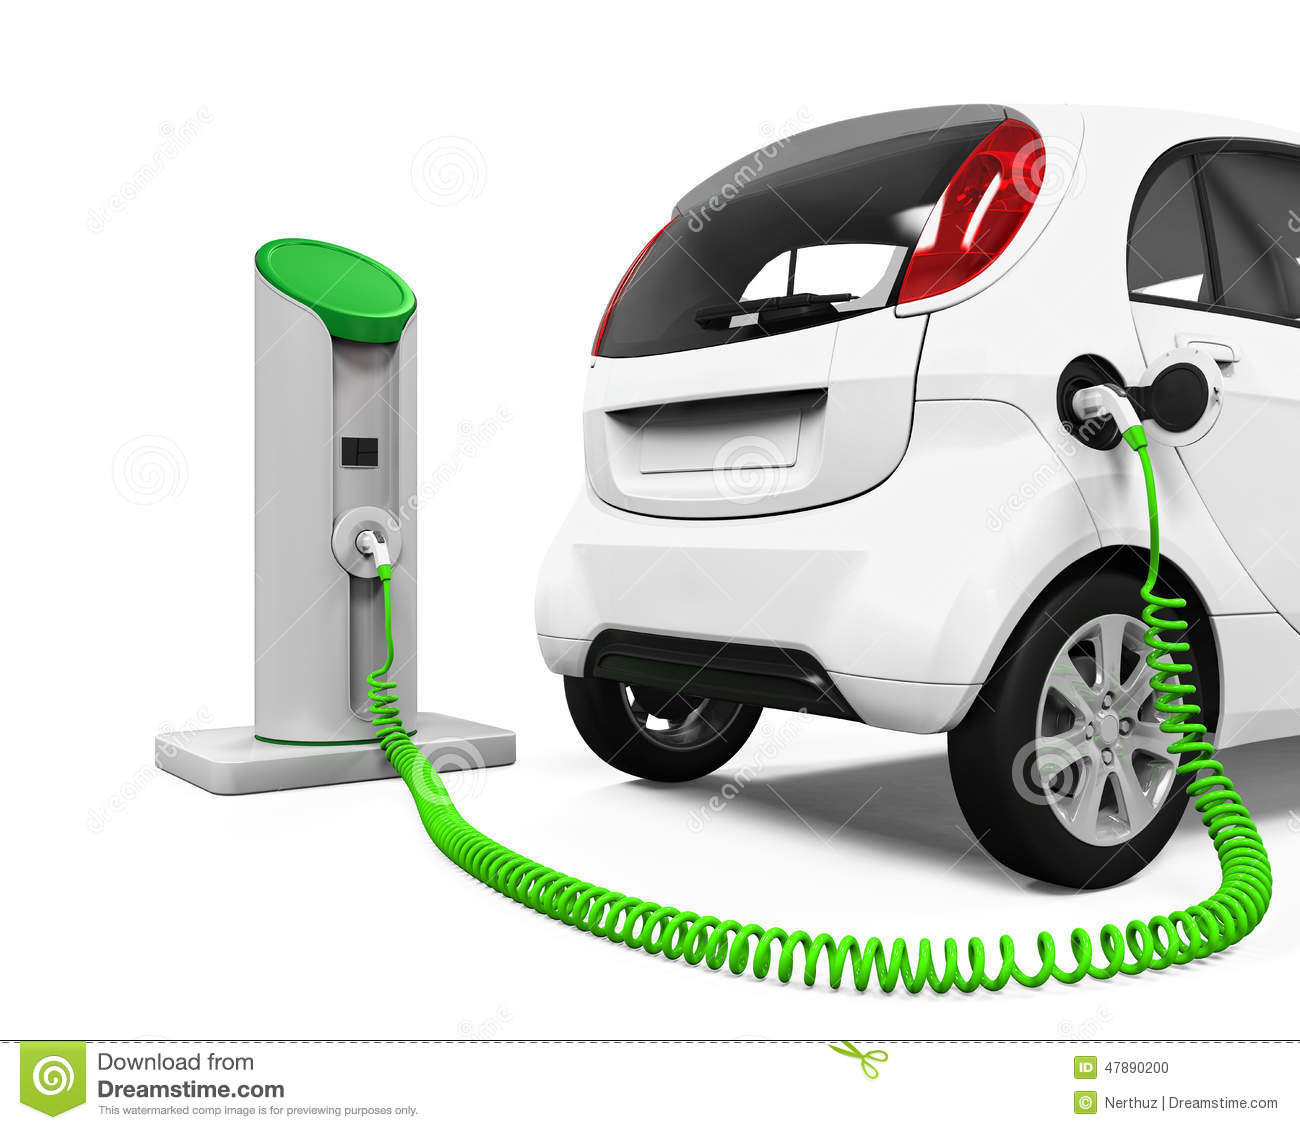 electric car charging map with Stock Illustration Electric Car Charging Station Isolated White Background D Render Image47890200 on 40625c8c 8a11 5710 A052 1479d2762eea further Meet The First Toyota Mirai And The Big Expensive Plan To Keep This Hydrogen Car Alive further Tesla Charging F9SXDzd1 Rqb BD CQVqY5GzWEjziwocf5Q0k9s gC4 furthermore Whidbeycamanoislands likewise 6.